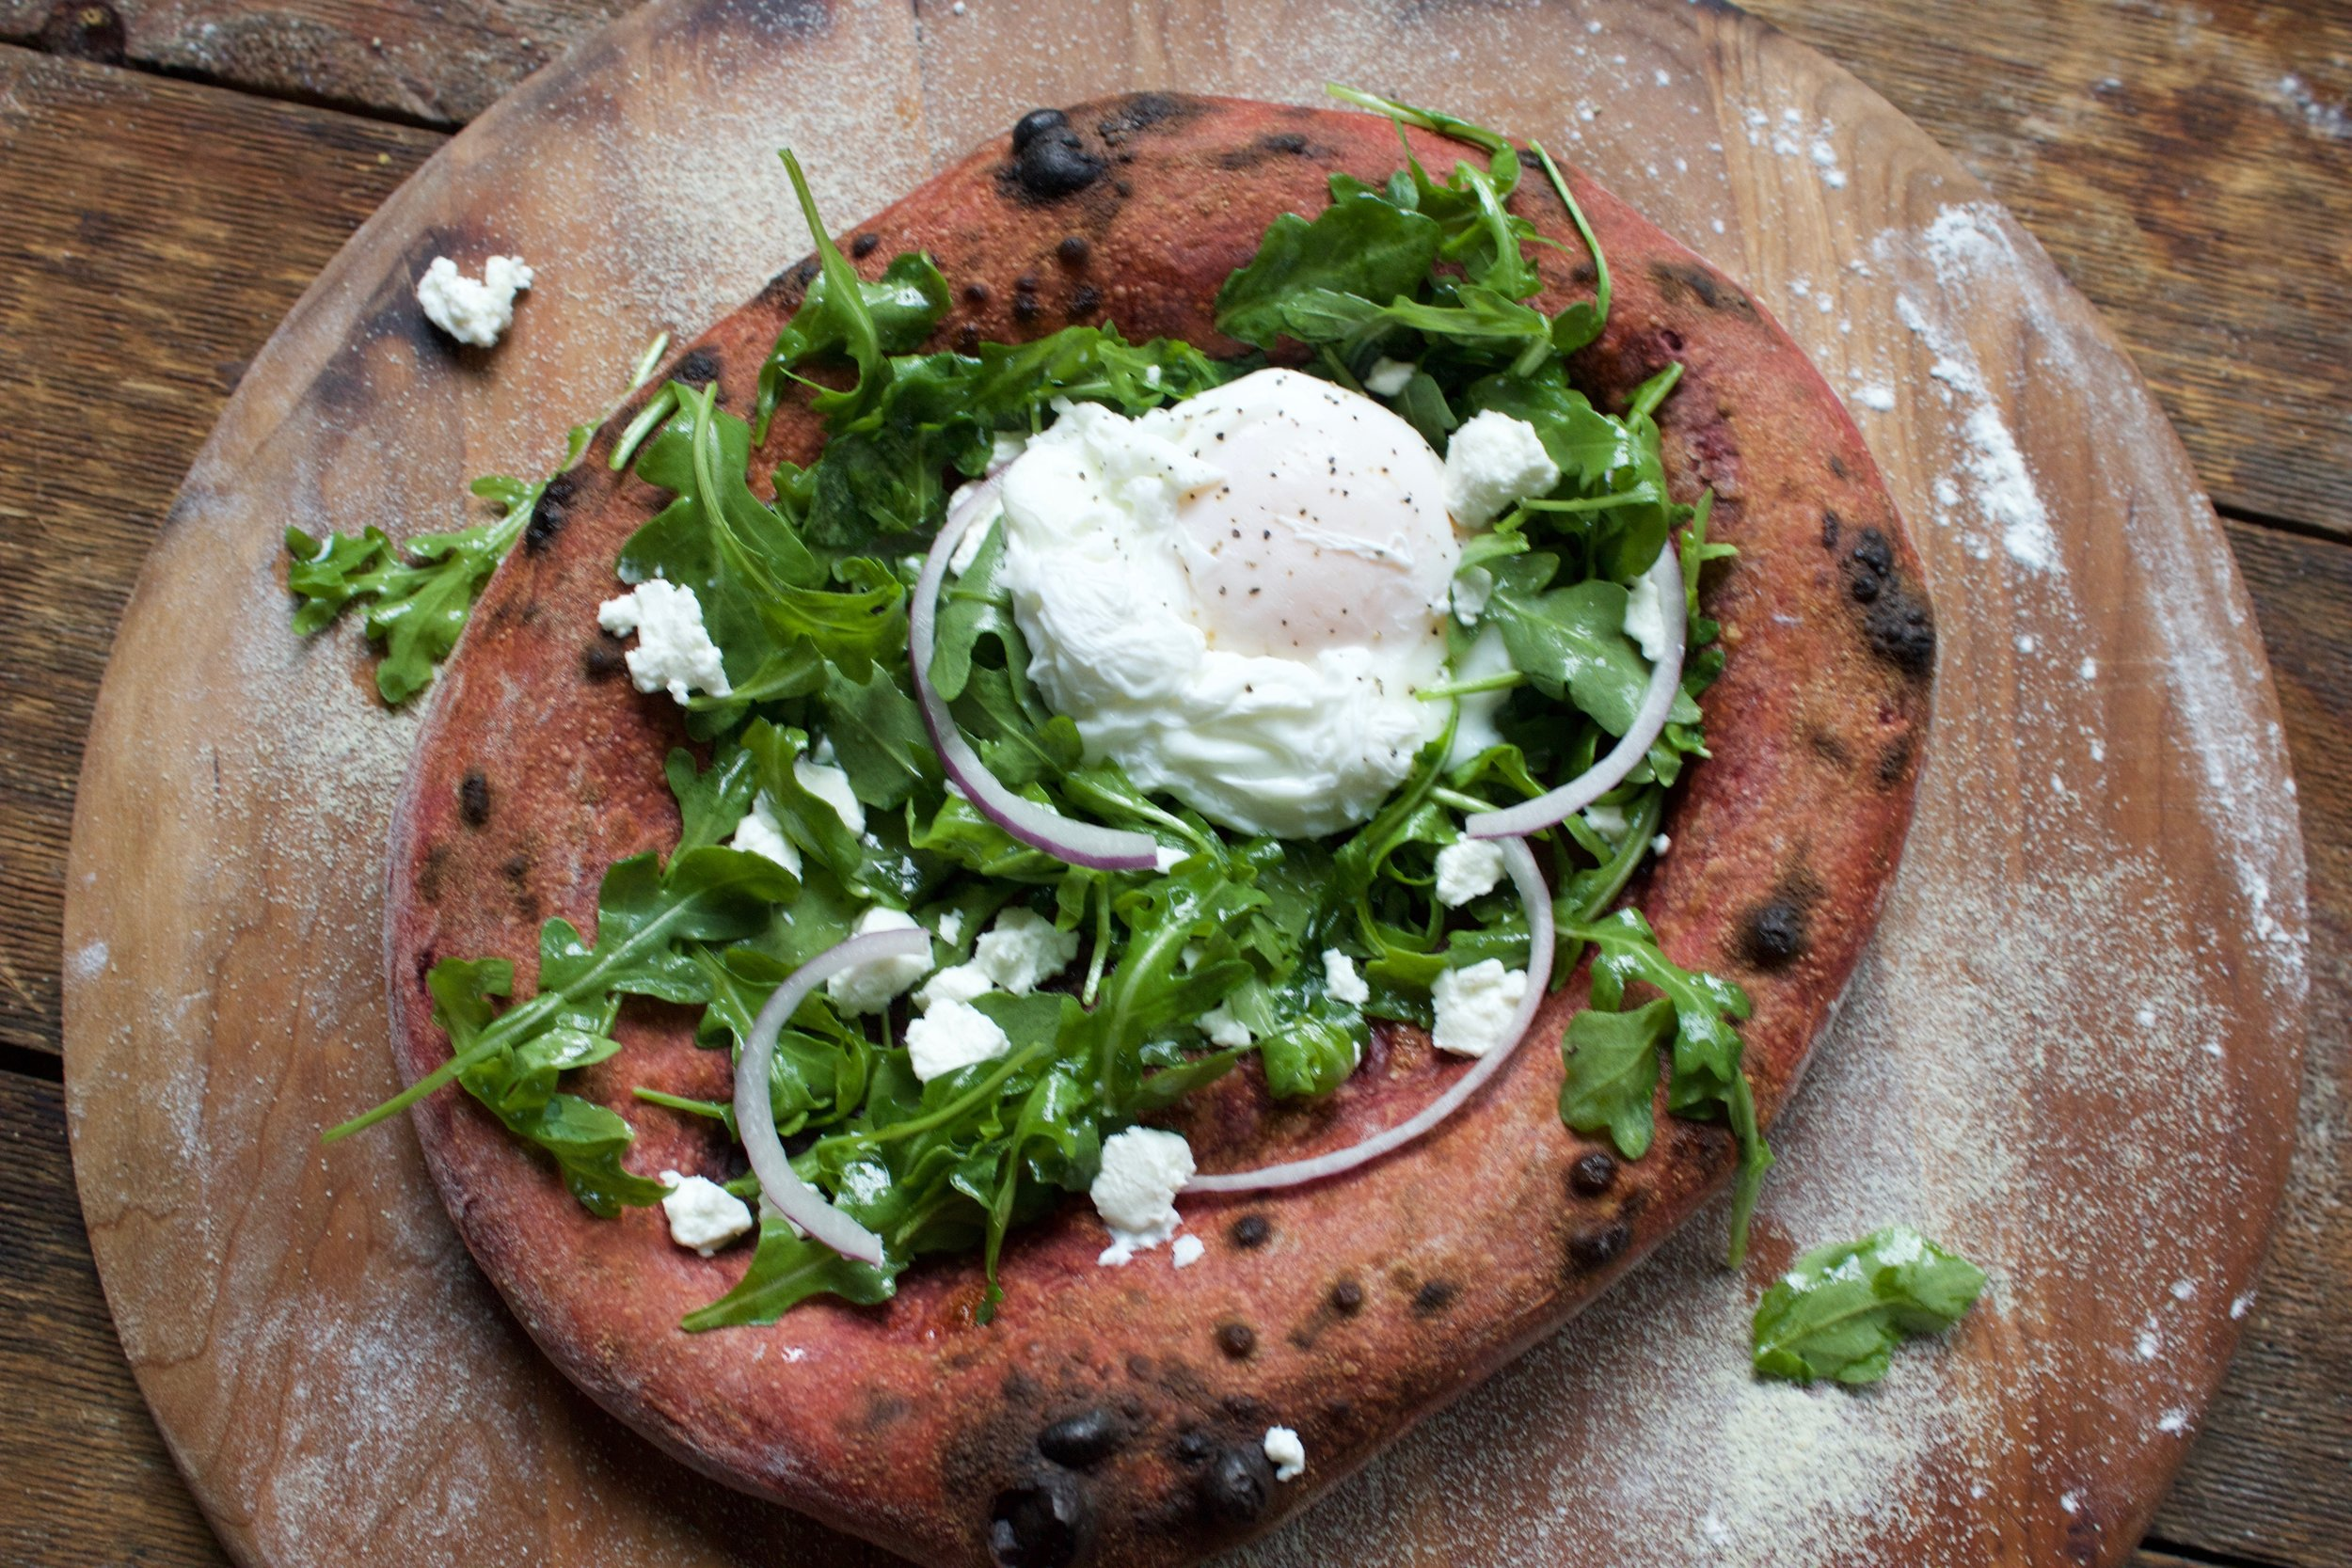 beet and arugula pizza with a poached egg